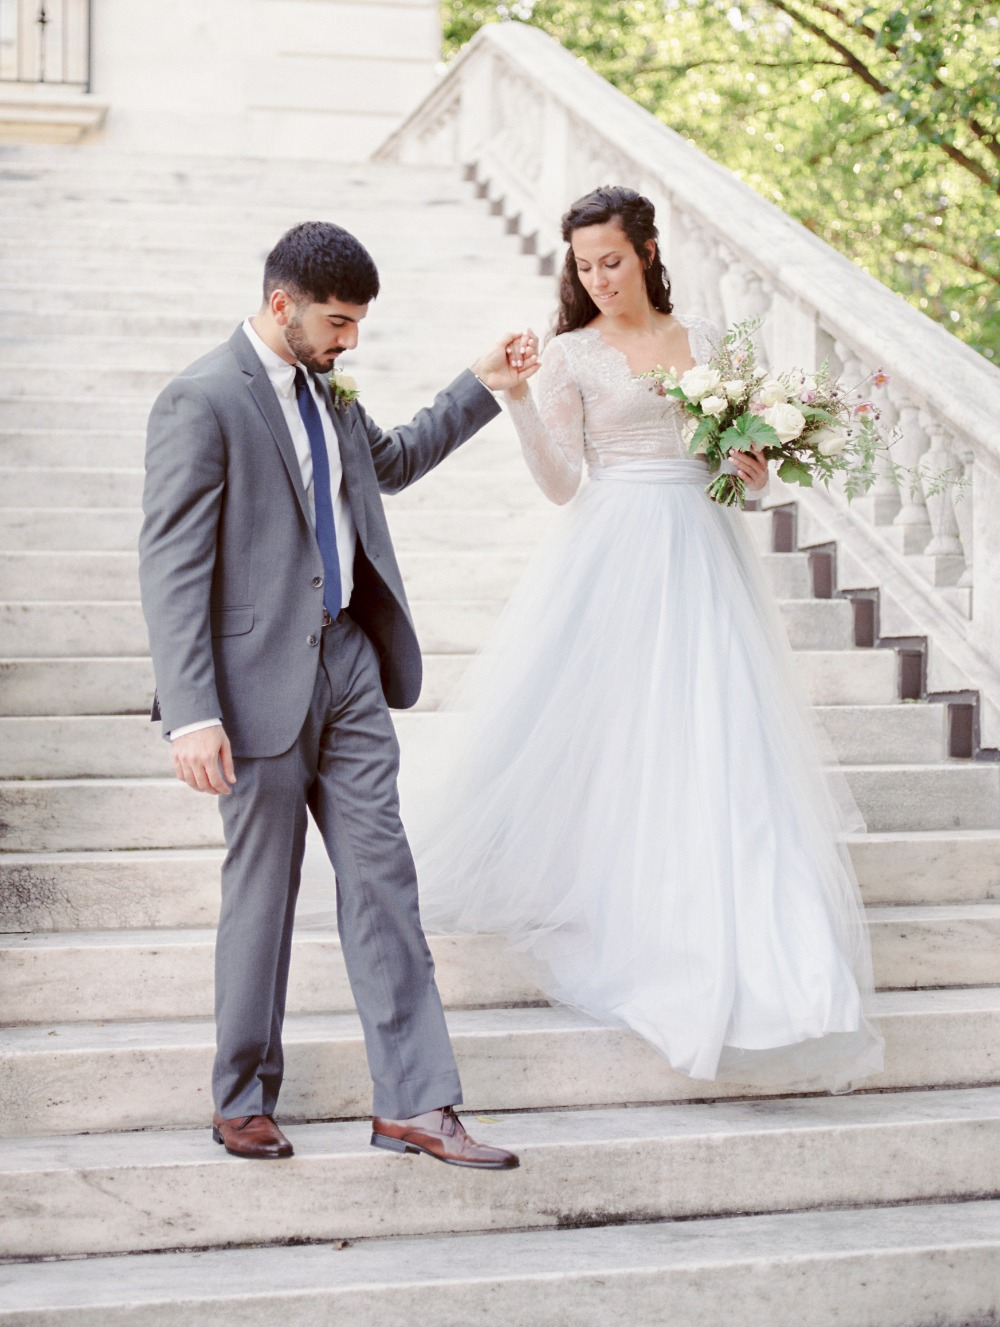 Gorgeous bride and groom fashion